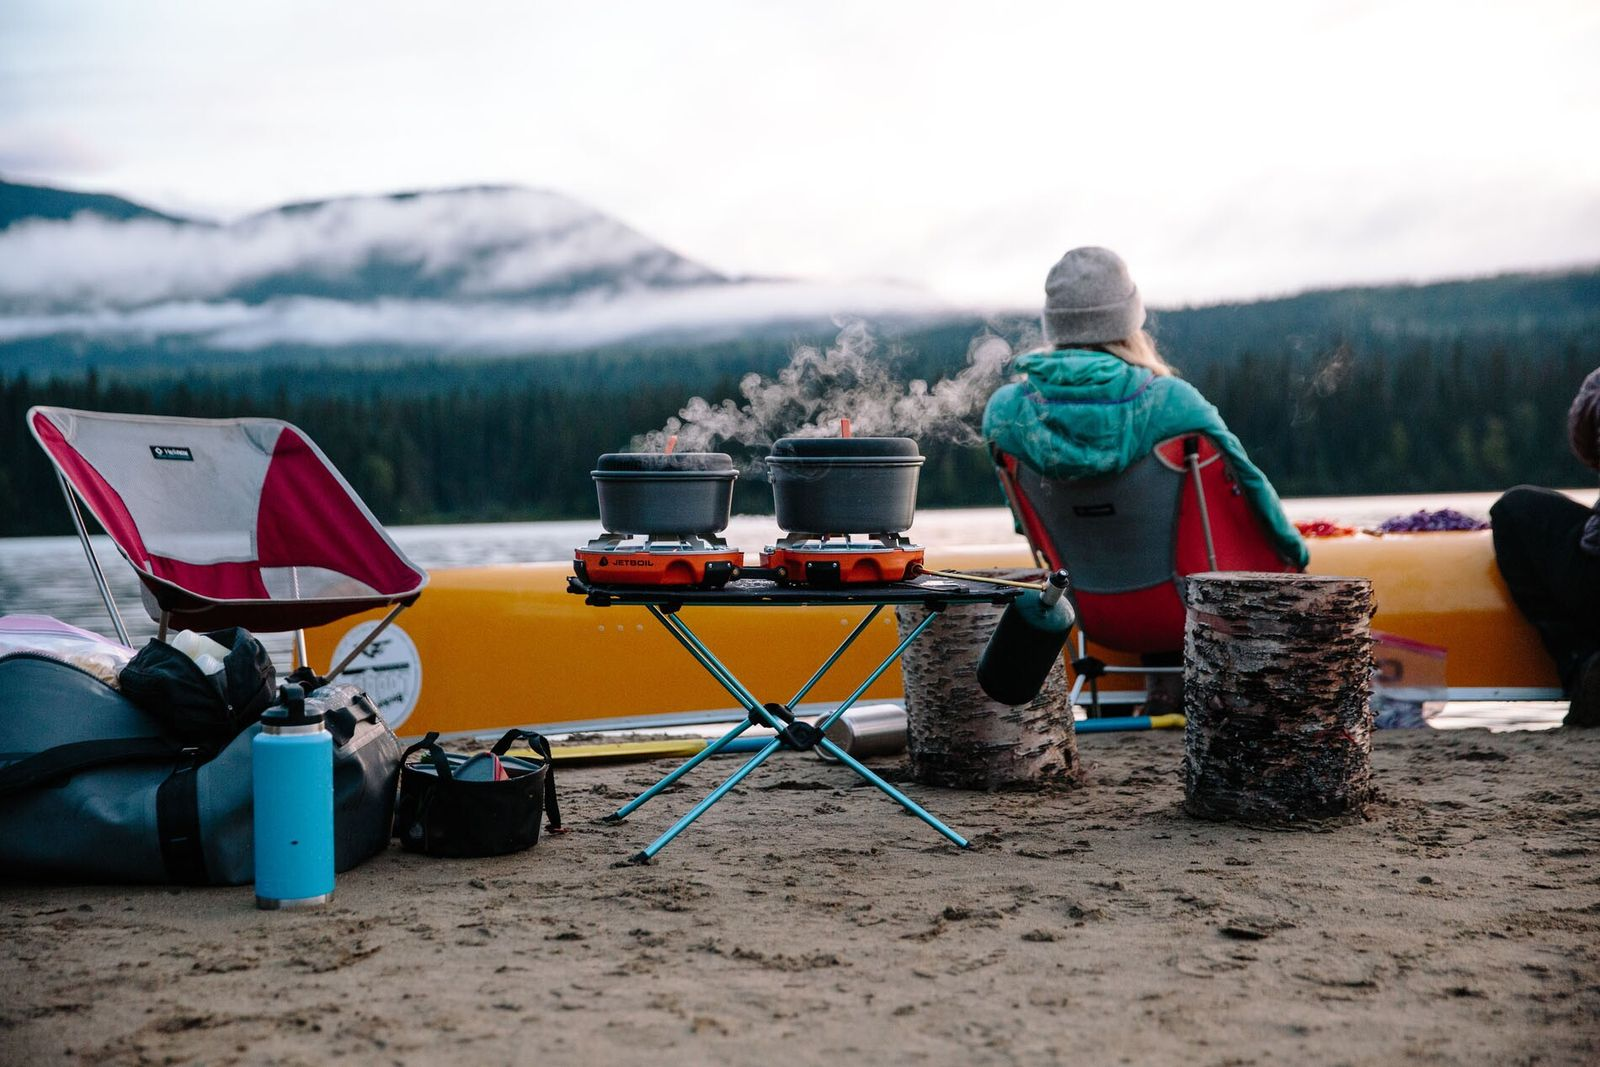 Bowron Lake is a wonderland for keen kayakers and wild camping enthusiasts alike. This is wild, untamed ...